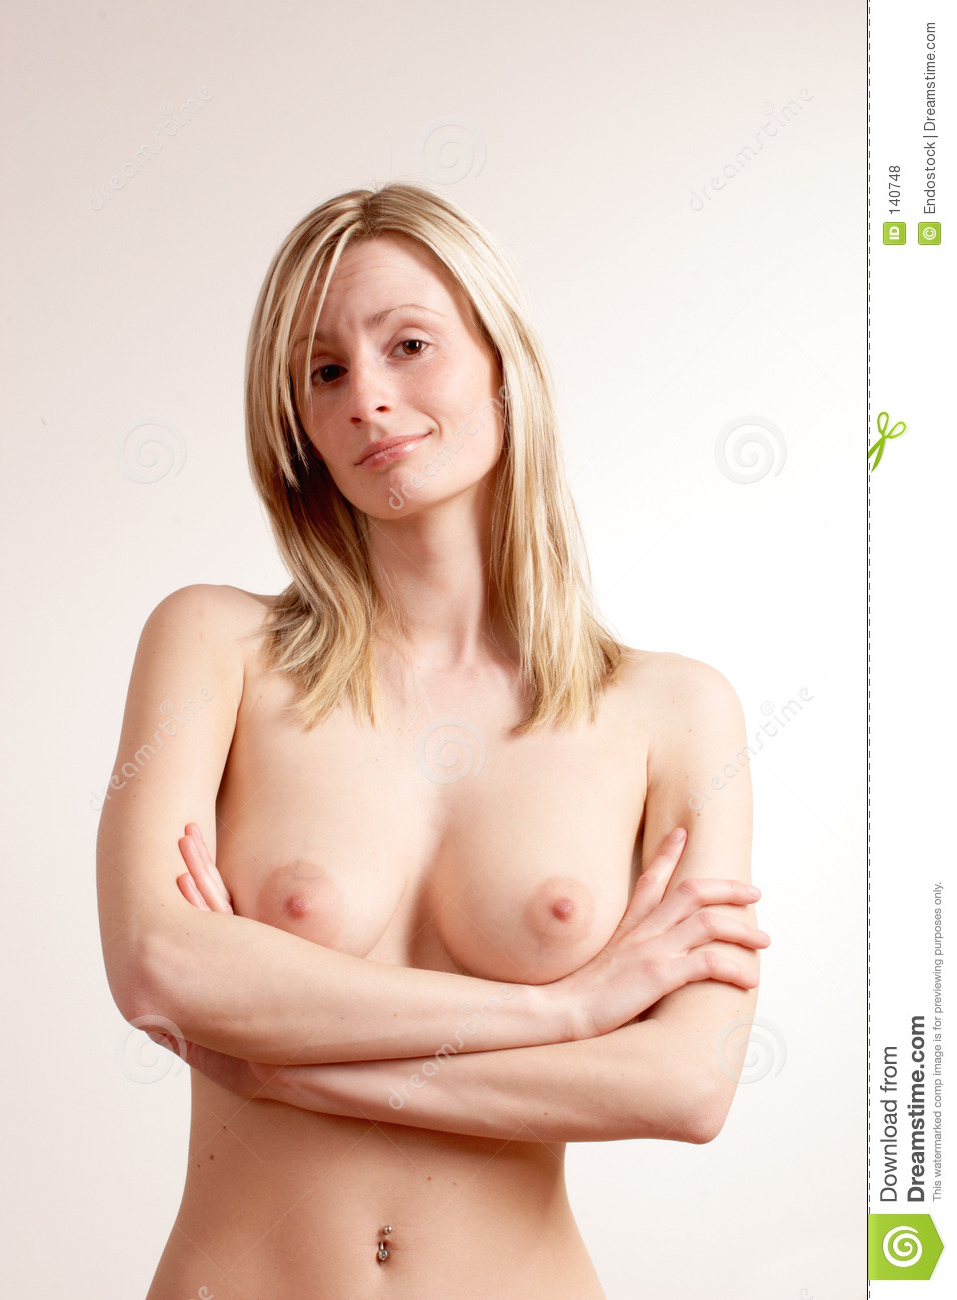 sex women healthy for